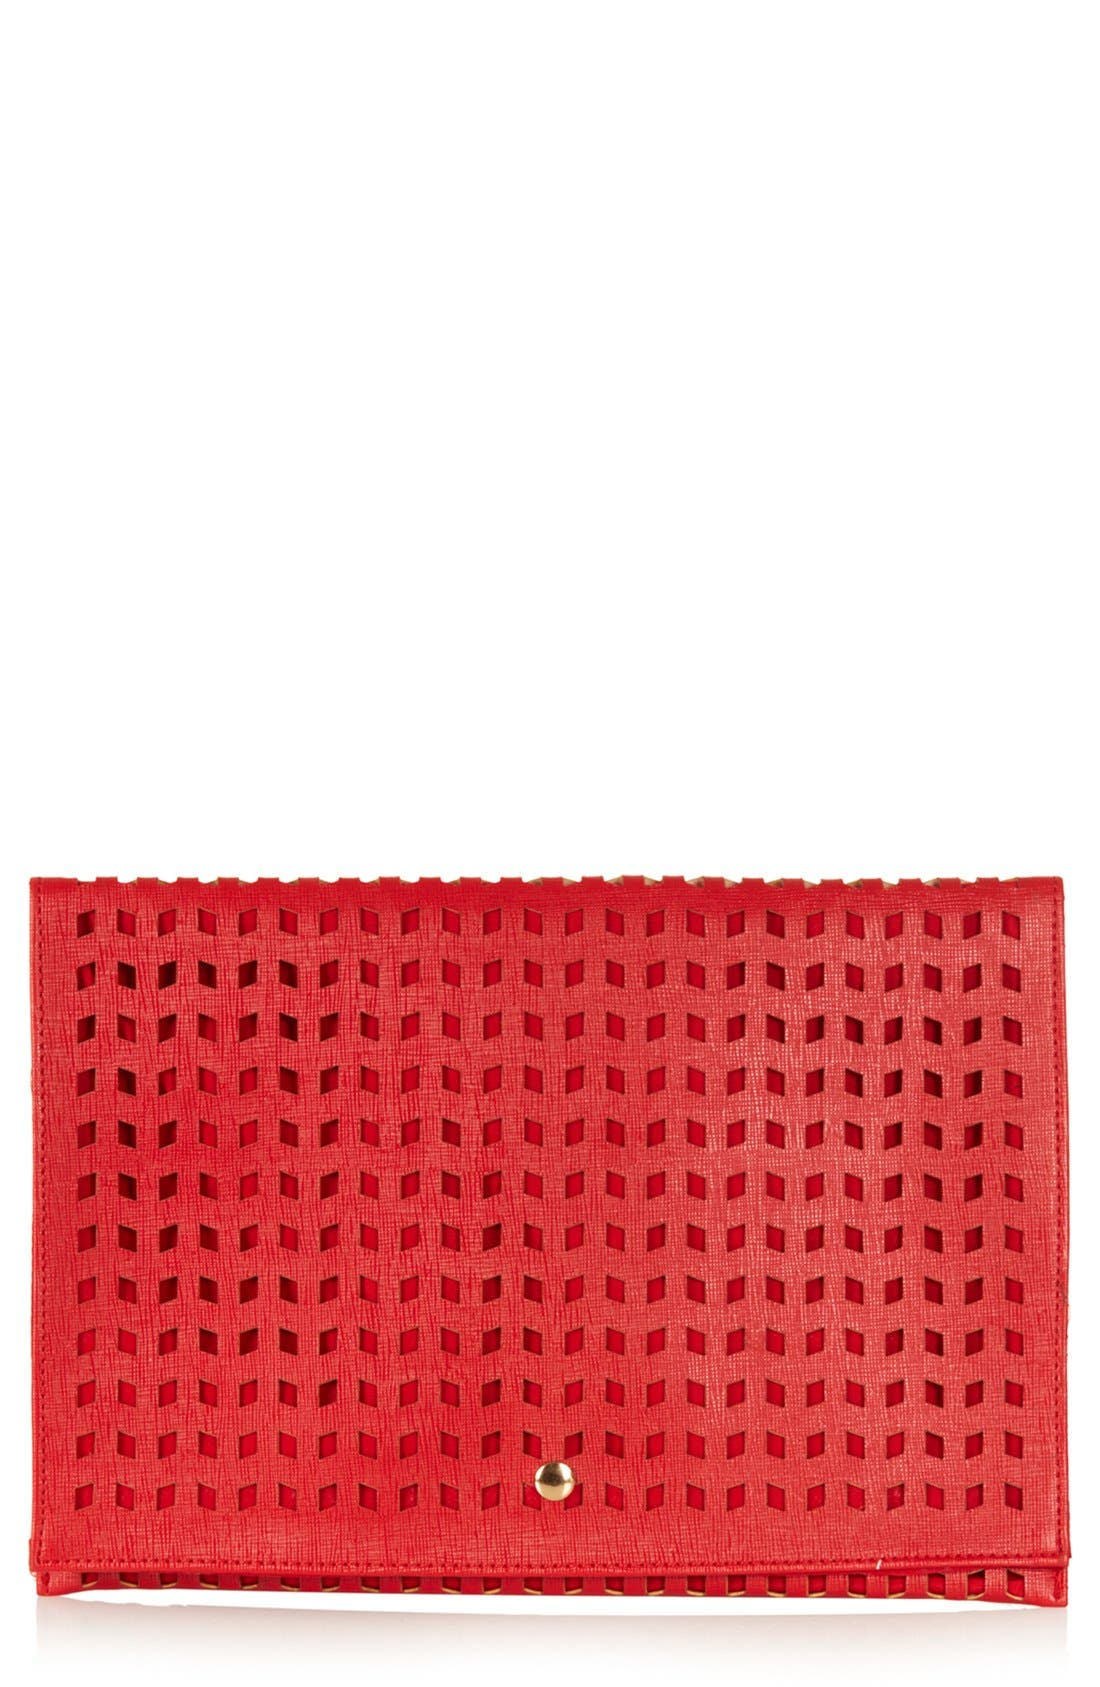 Alternate Image 1 Selected - Topshop Perforated Foldover Clutch